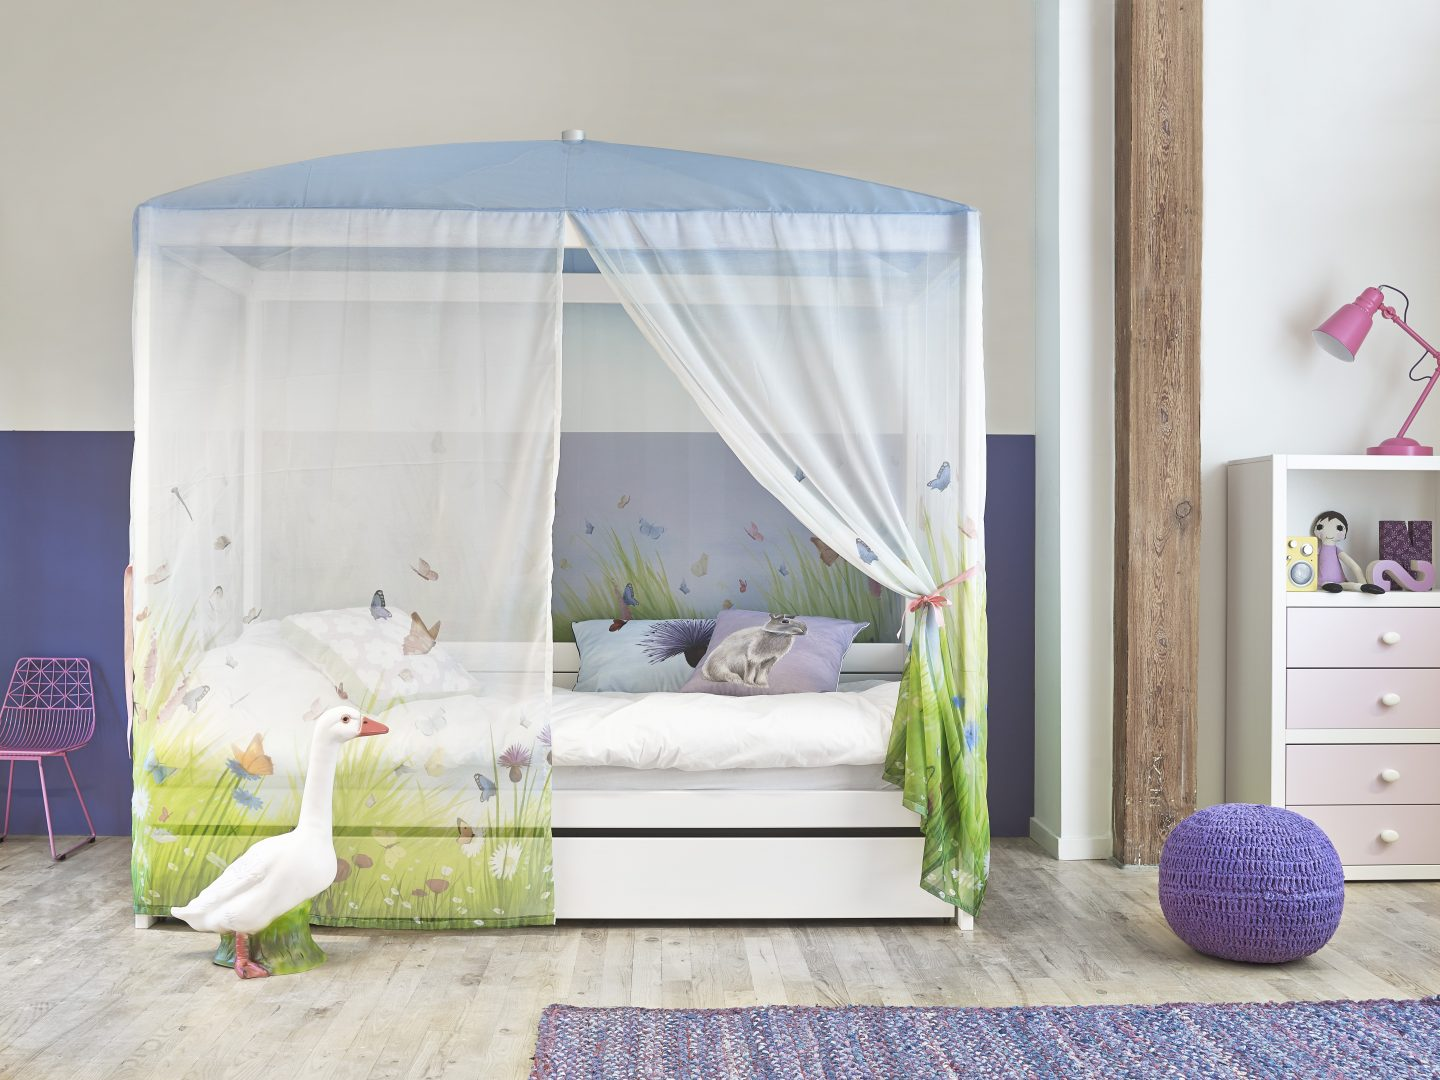 Butterfly Love 4Posterbed - GET INSPIRED De kinderkamer